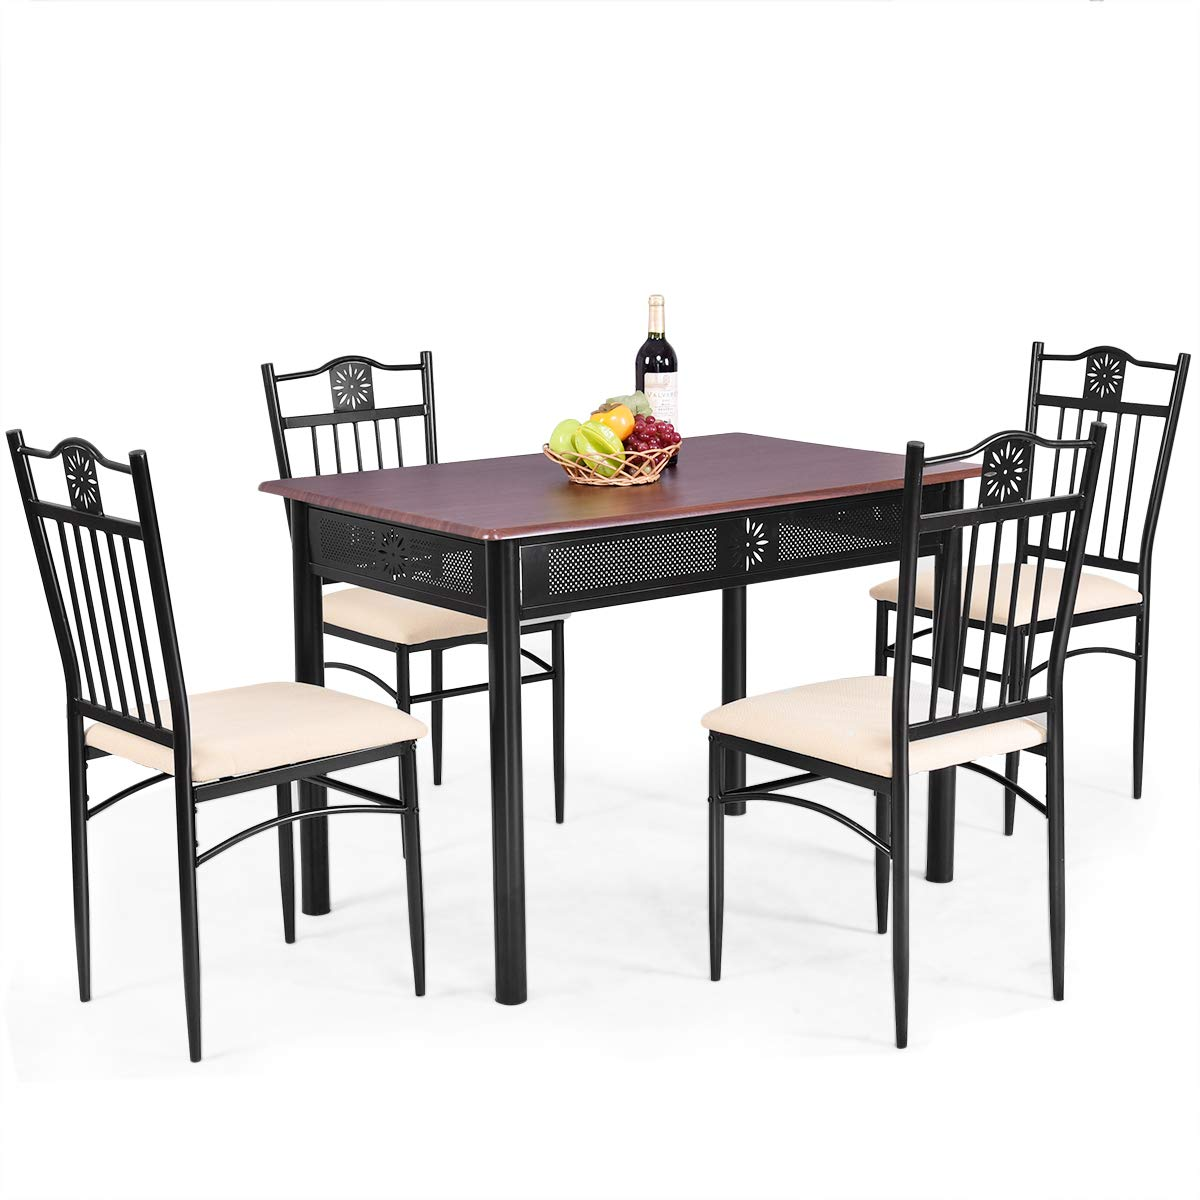 Tangkula 5 Piece Dining Table and Chairs Set Vintage Retro Wood Top Metal Frame Padded Seat Dining Table Set Home Kitchen Dining Room Furniture